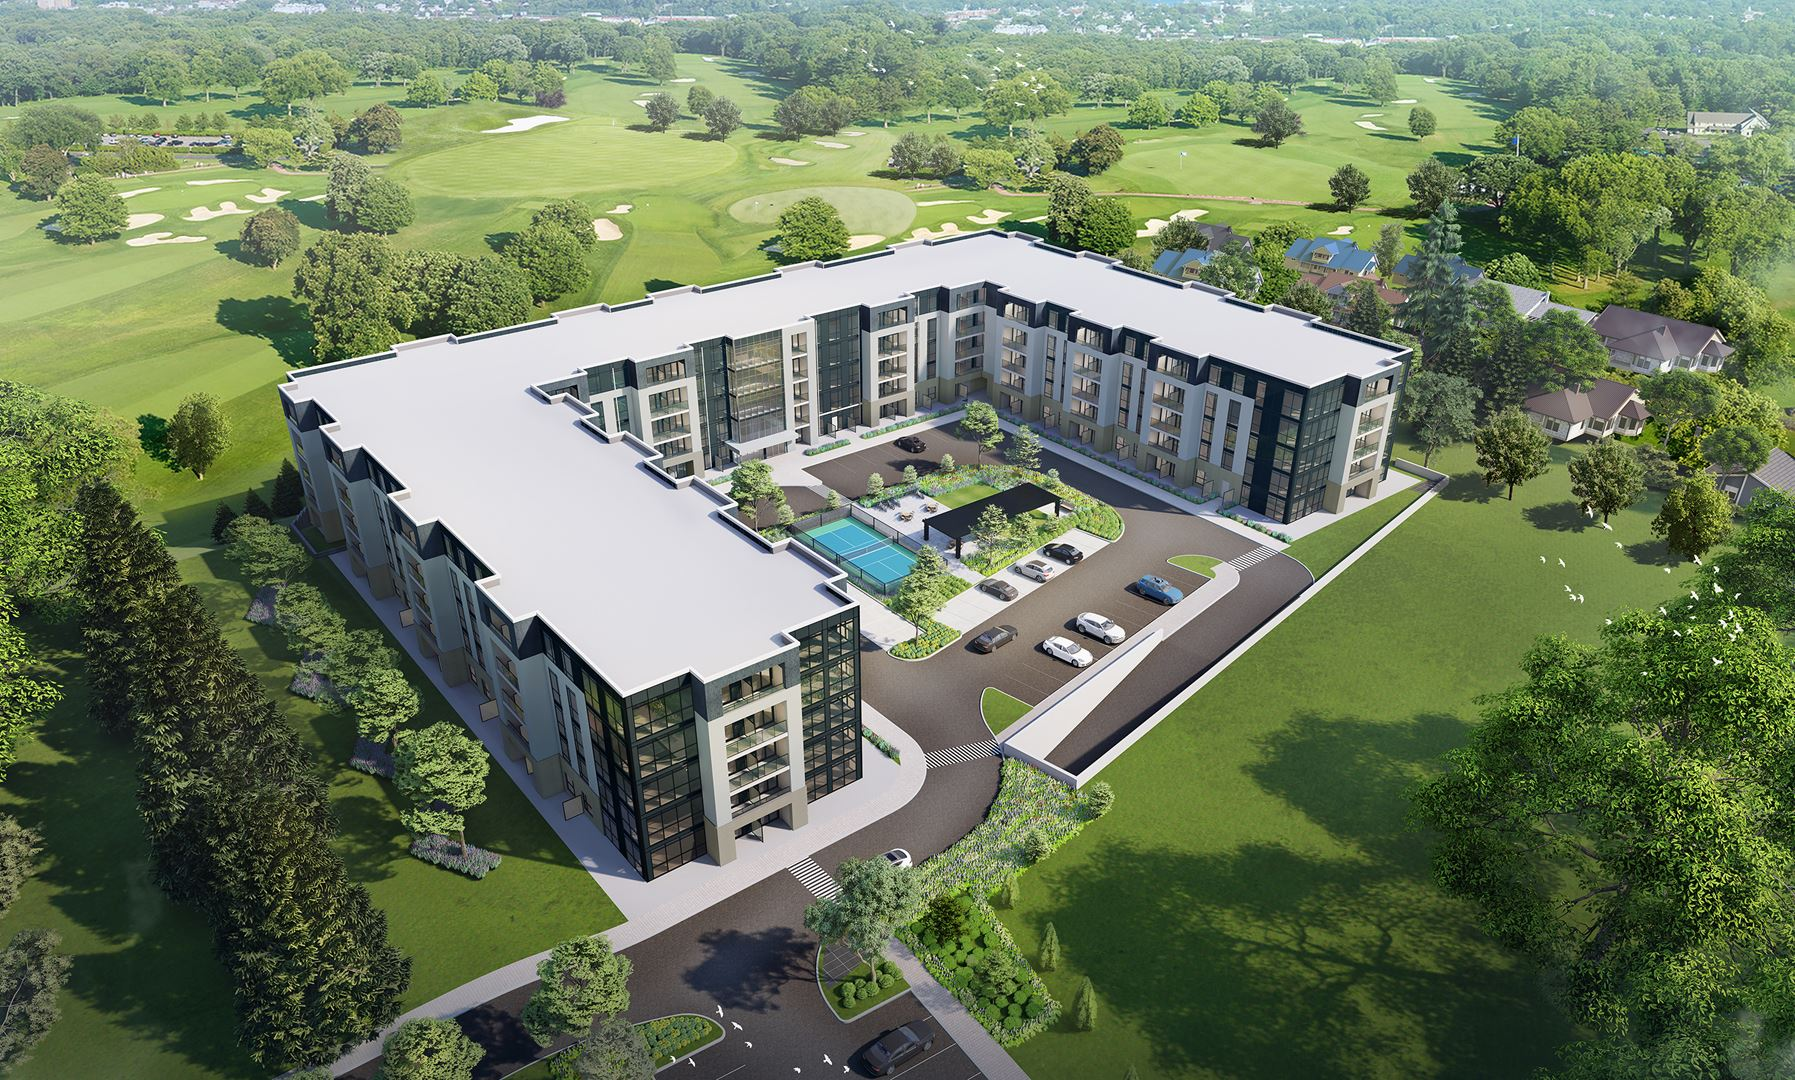 Rendering of Montebello Condos aerial view